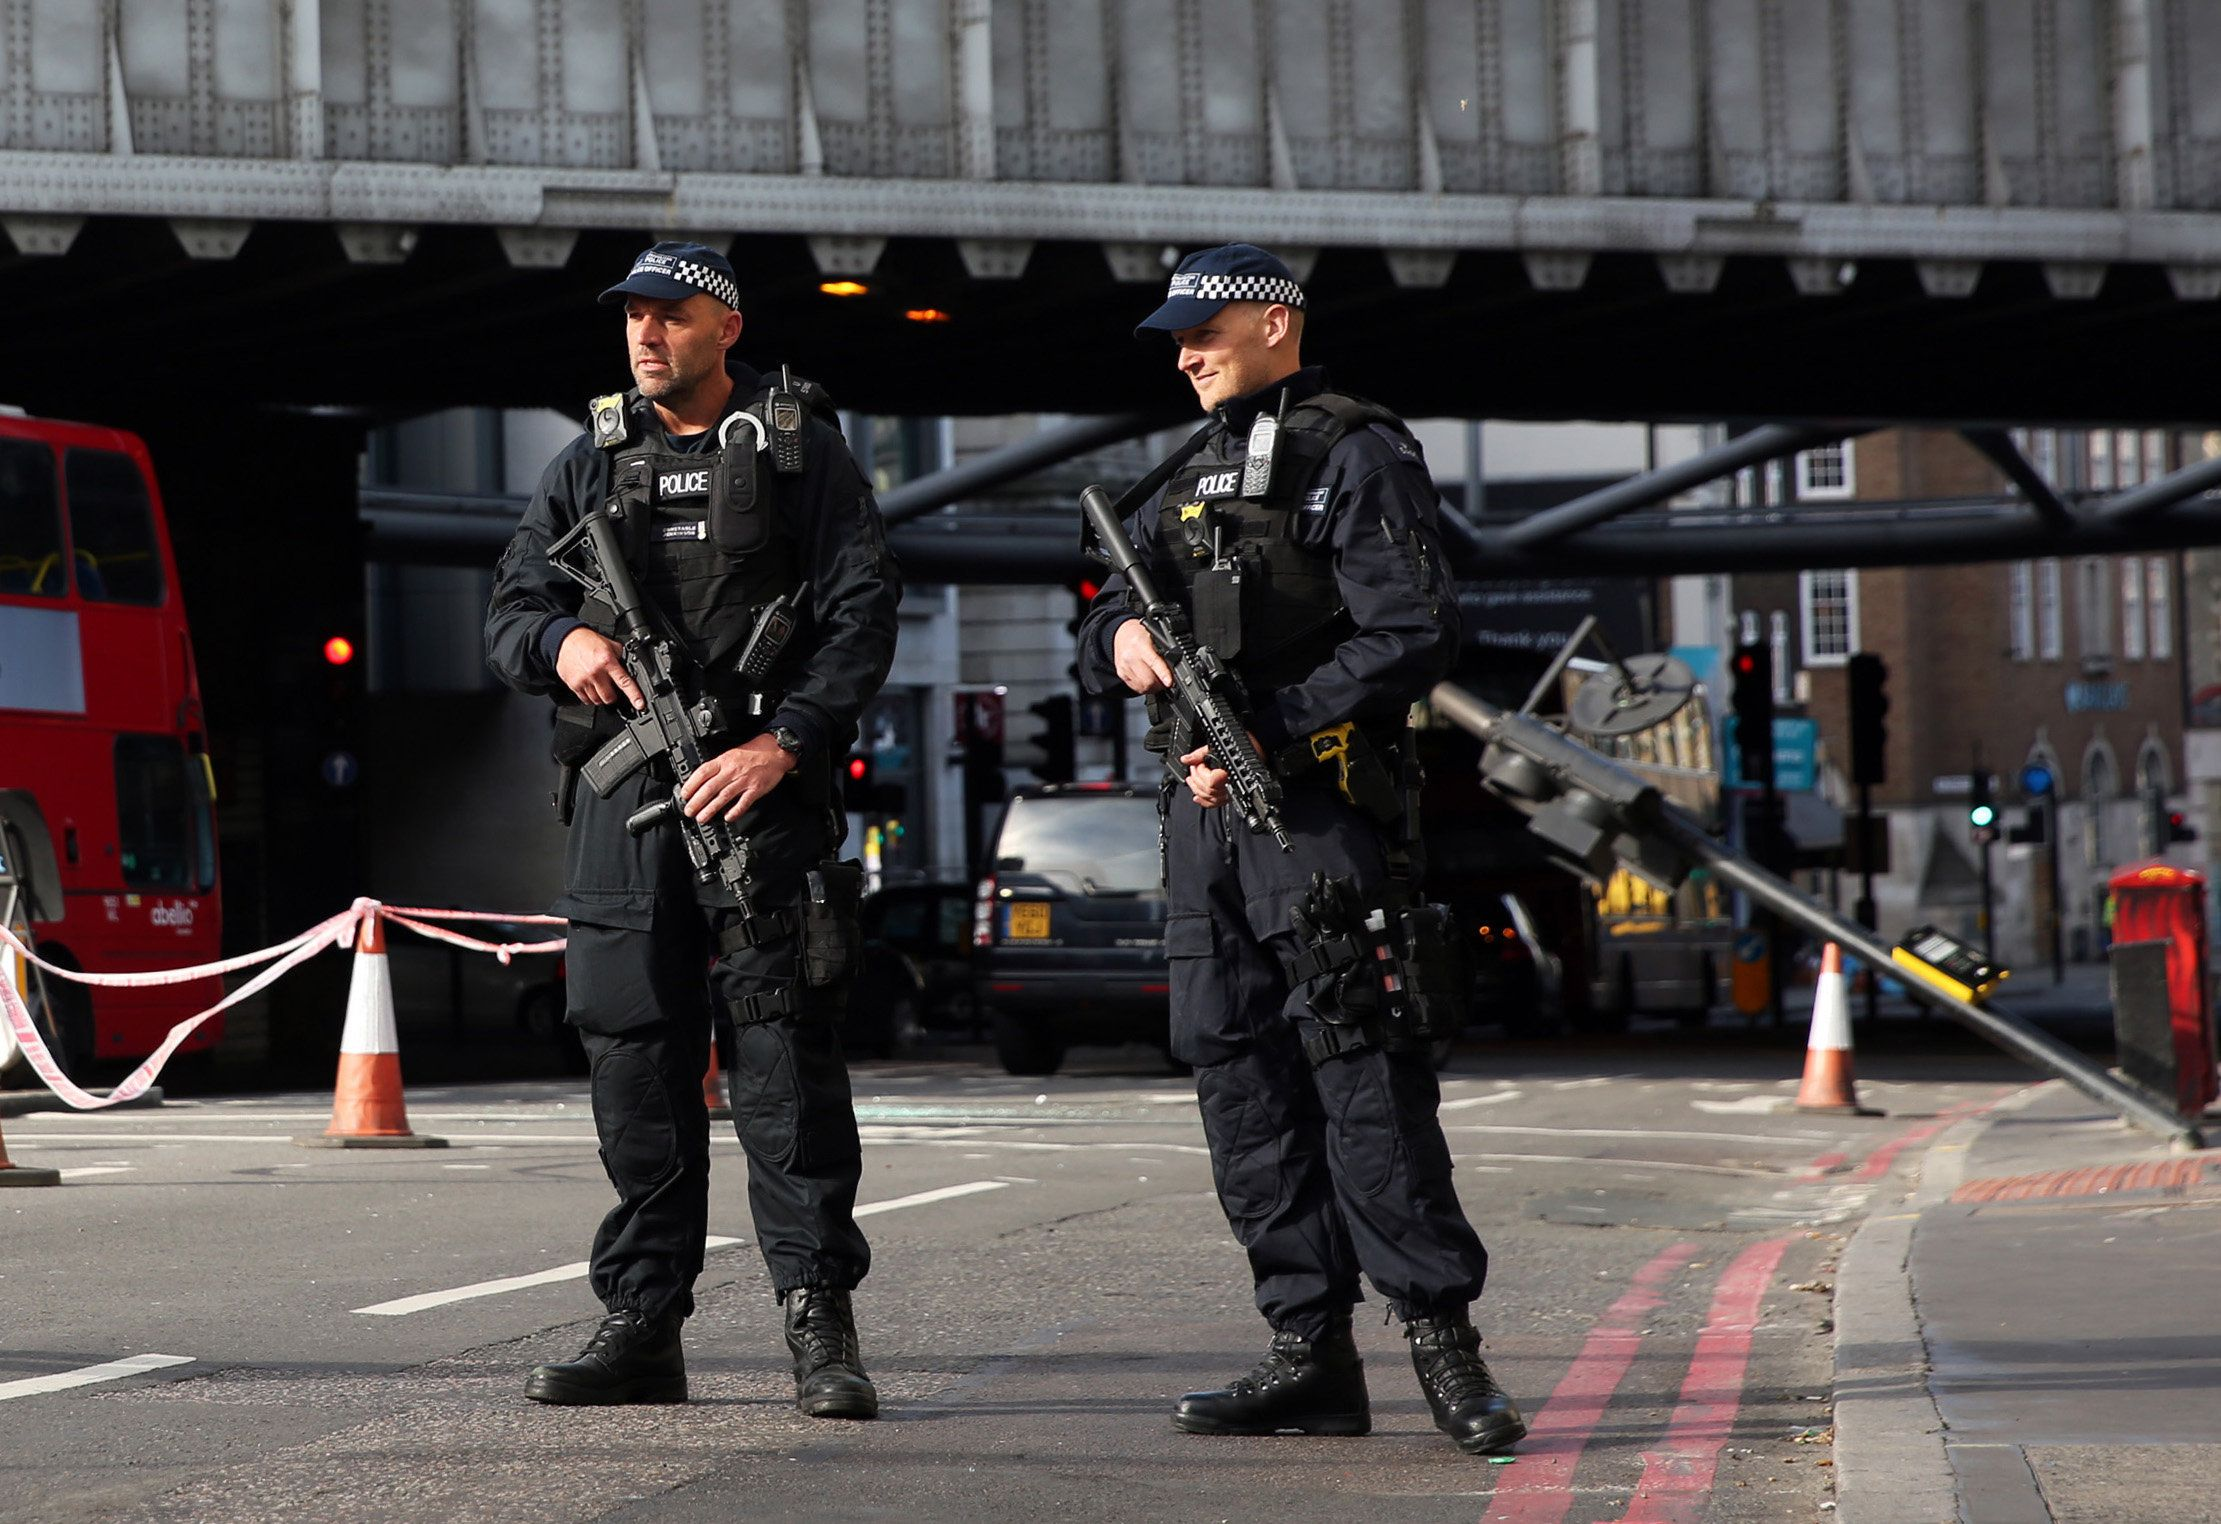 London Bridge Terror Attack: British Policing 'Arrogant ...